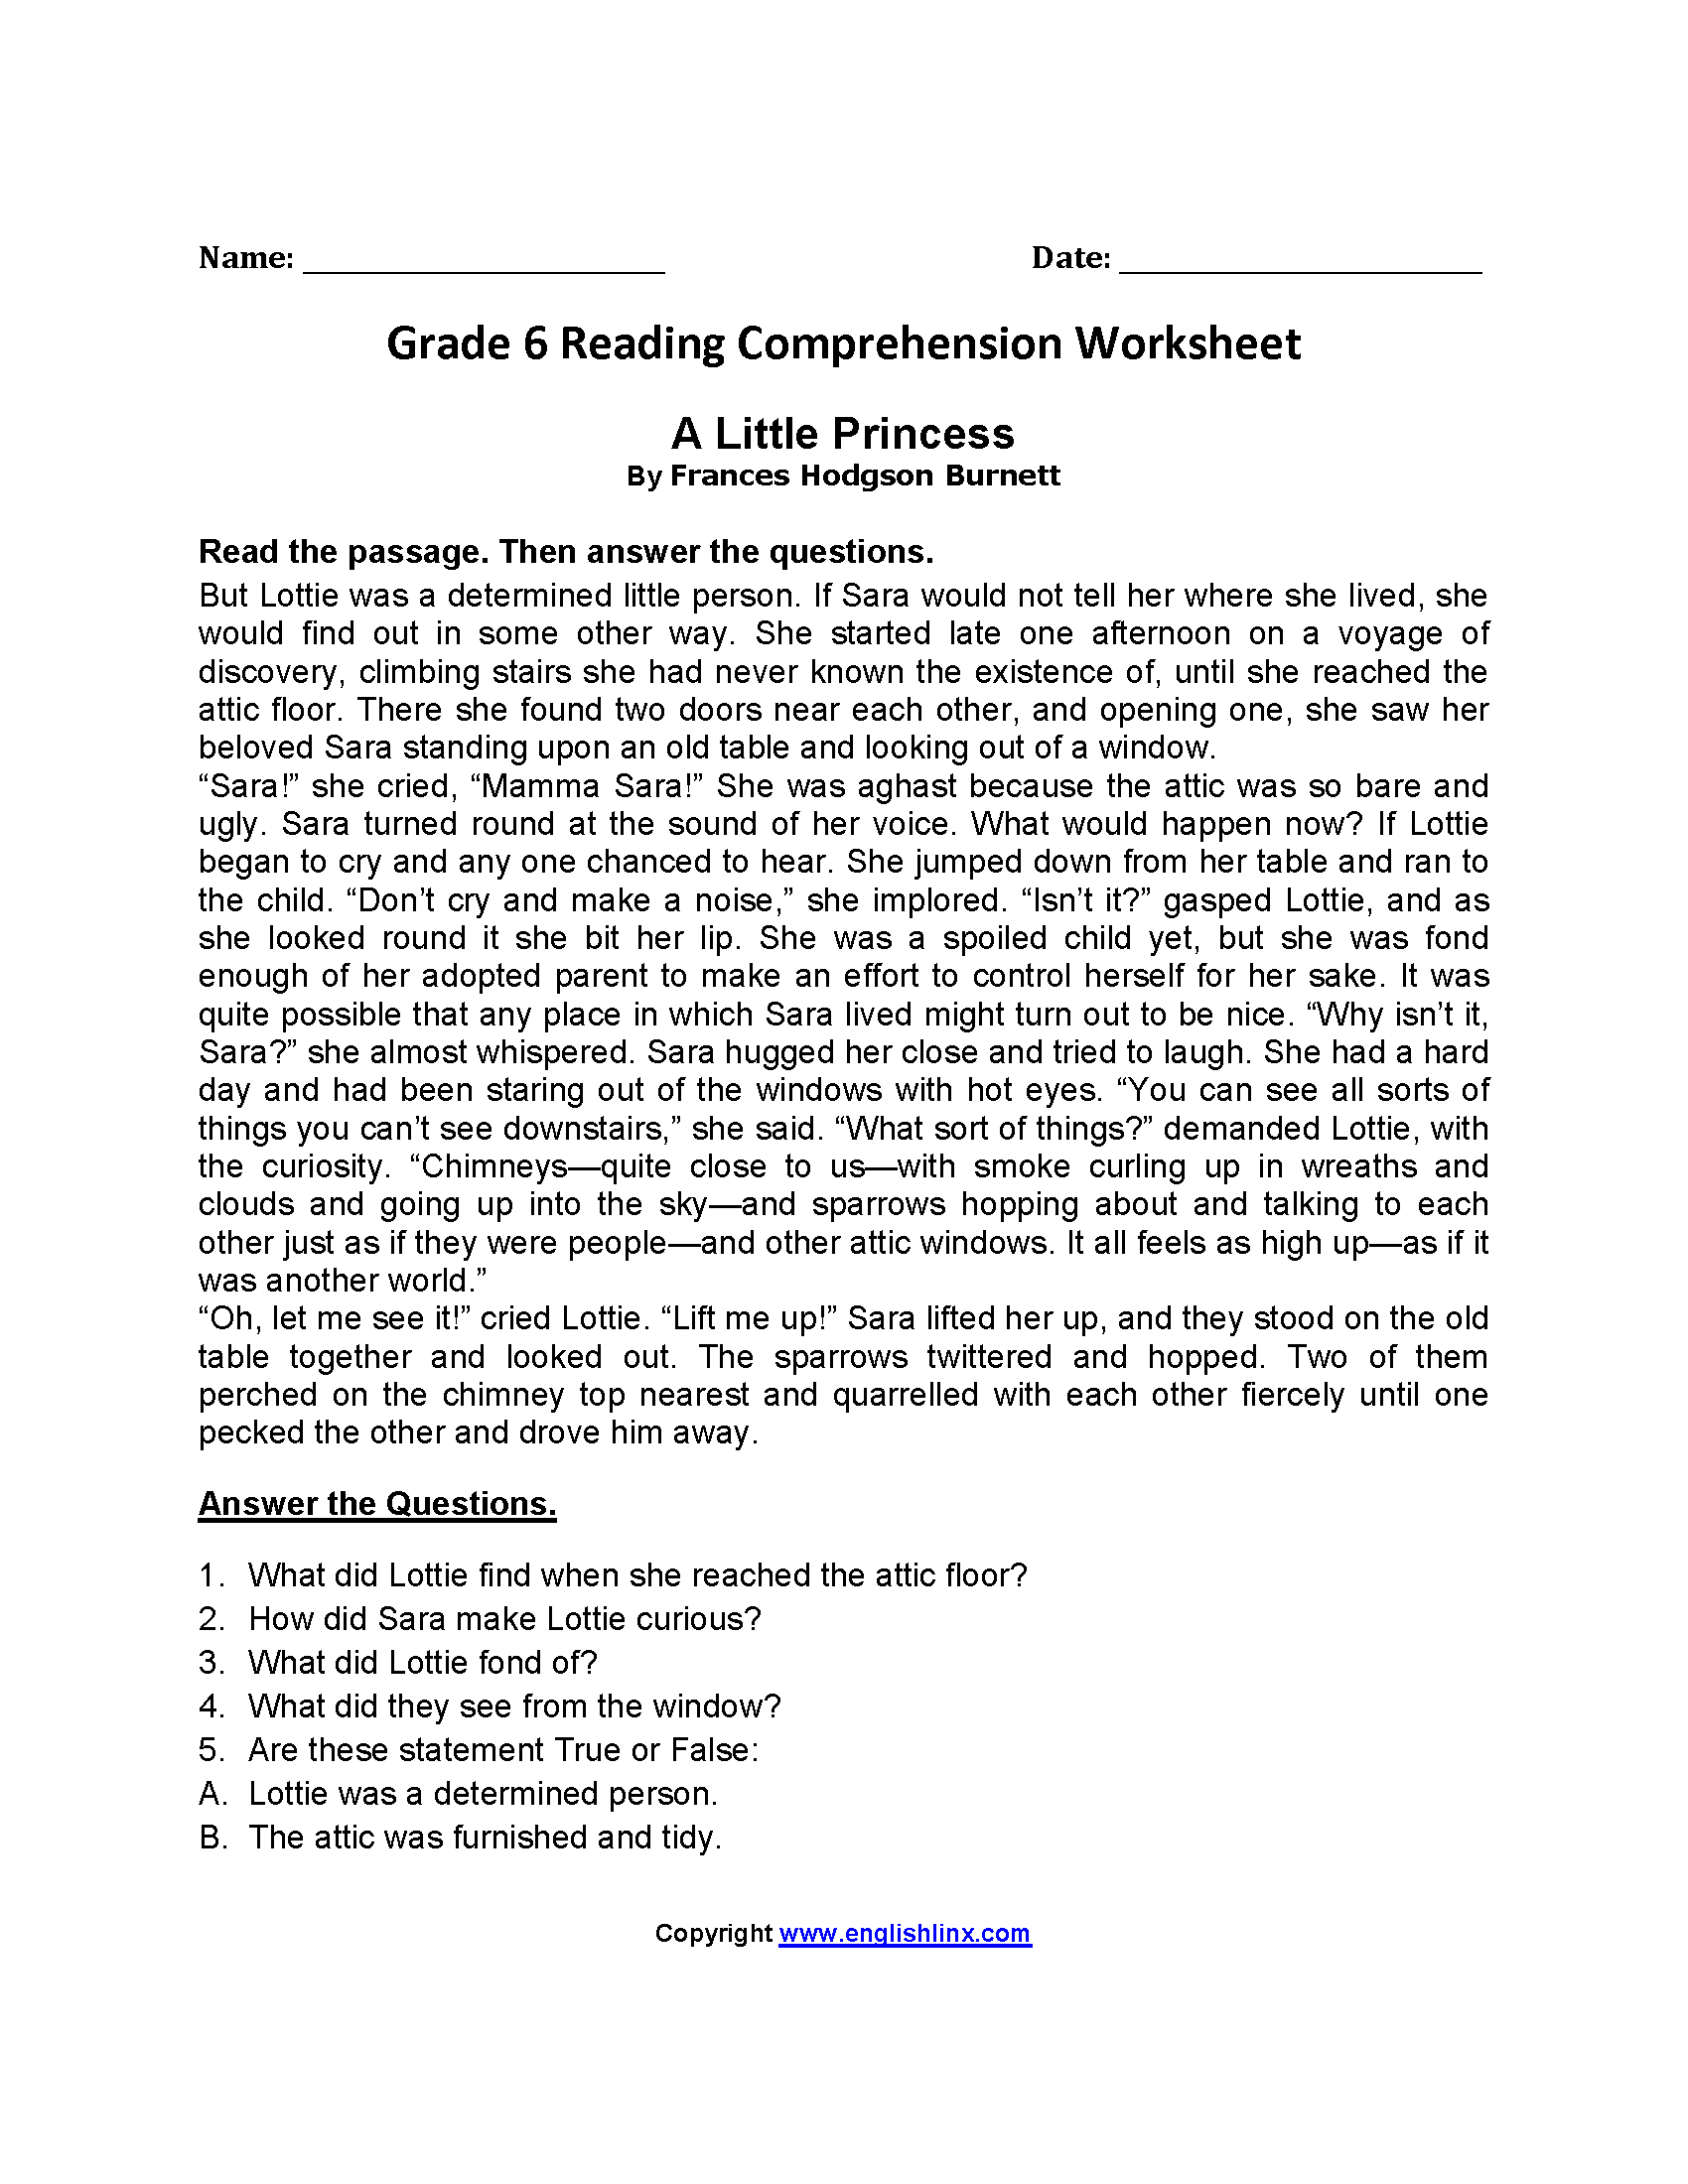 Comprehension Worksheet 6th Grade